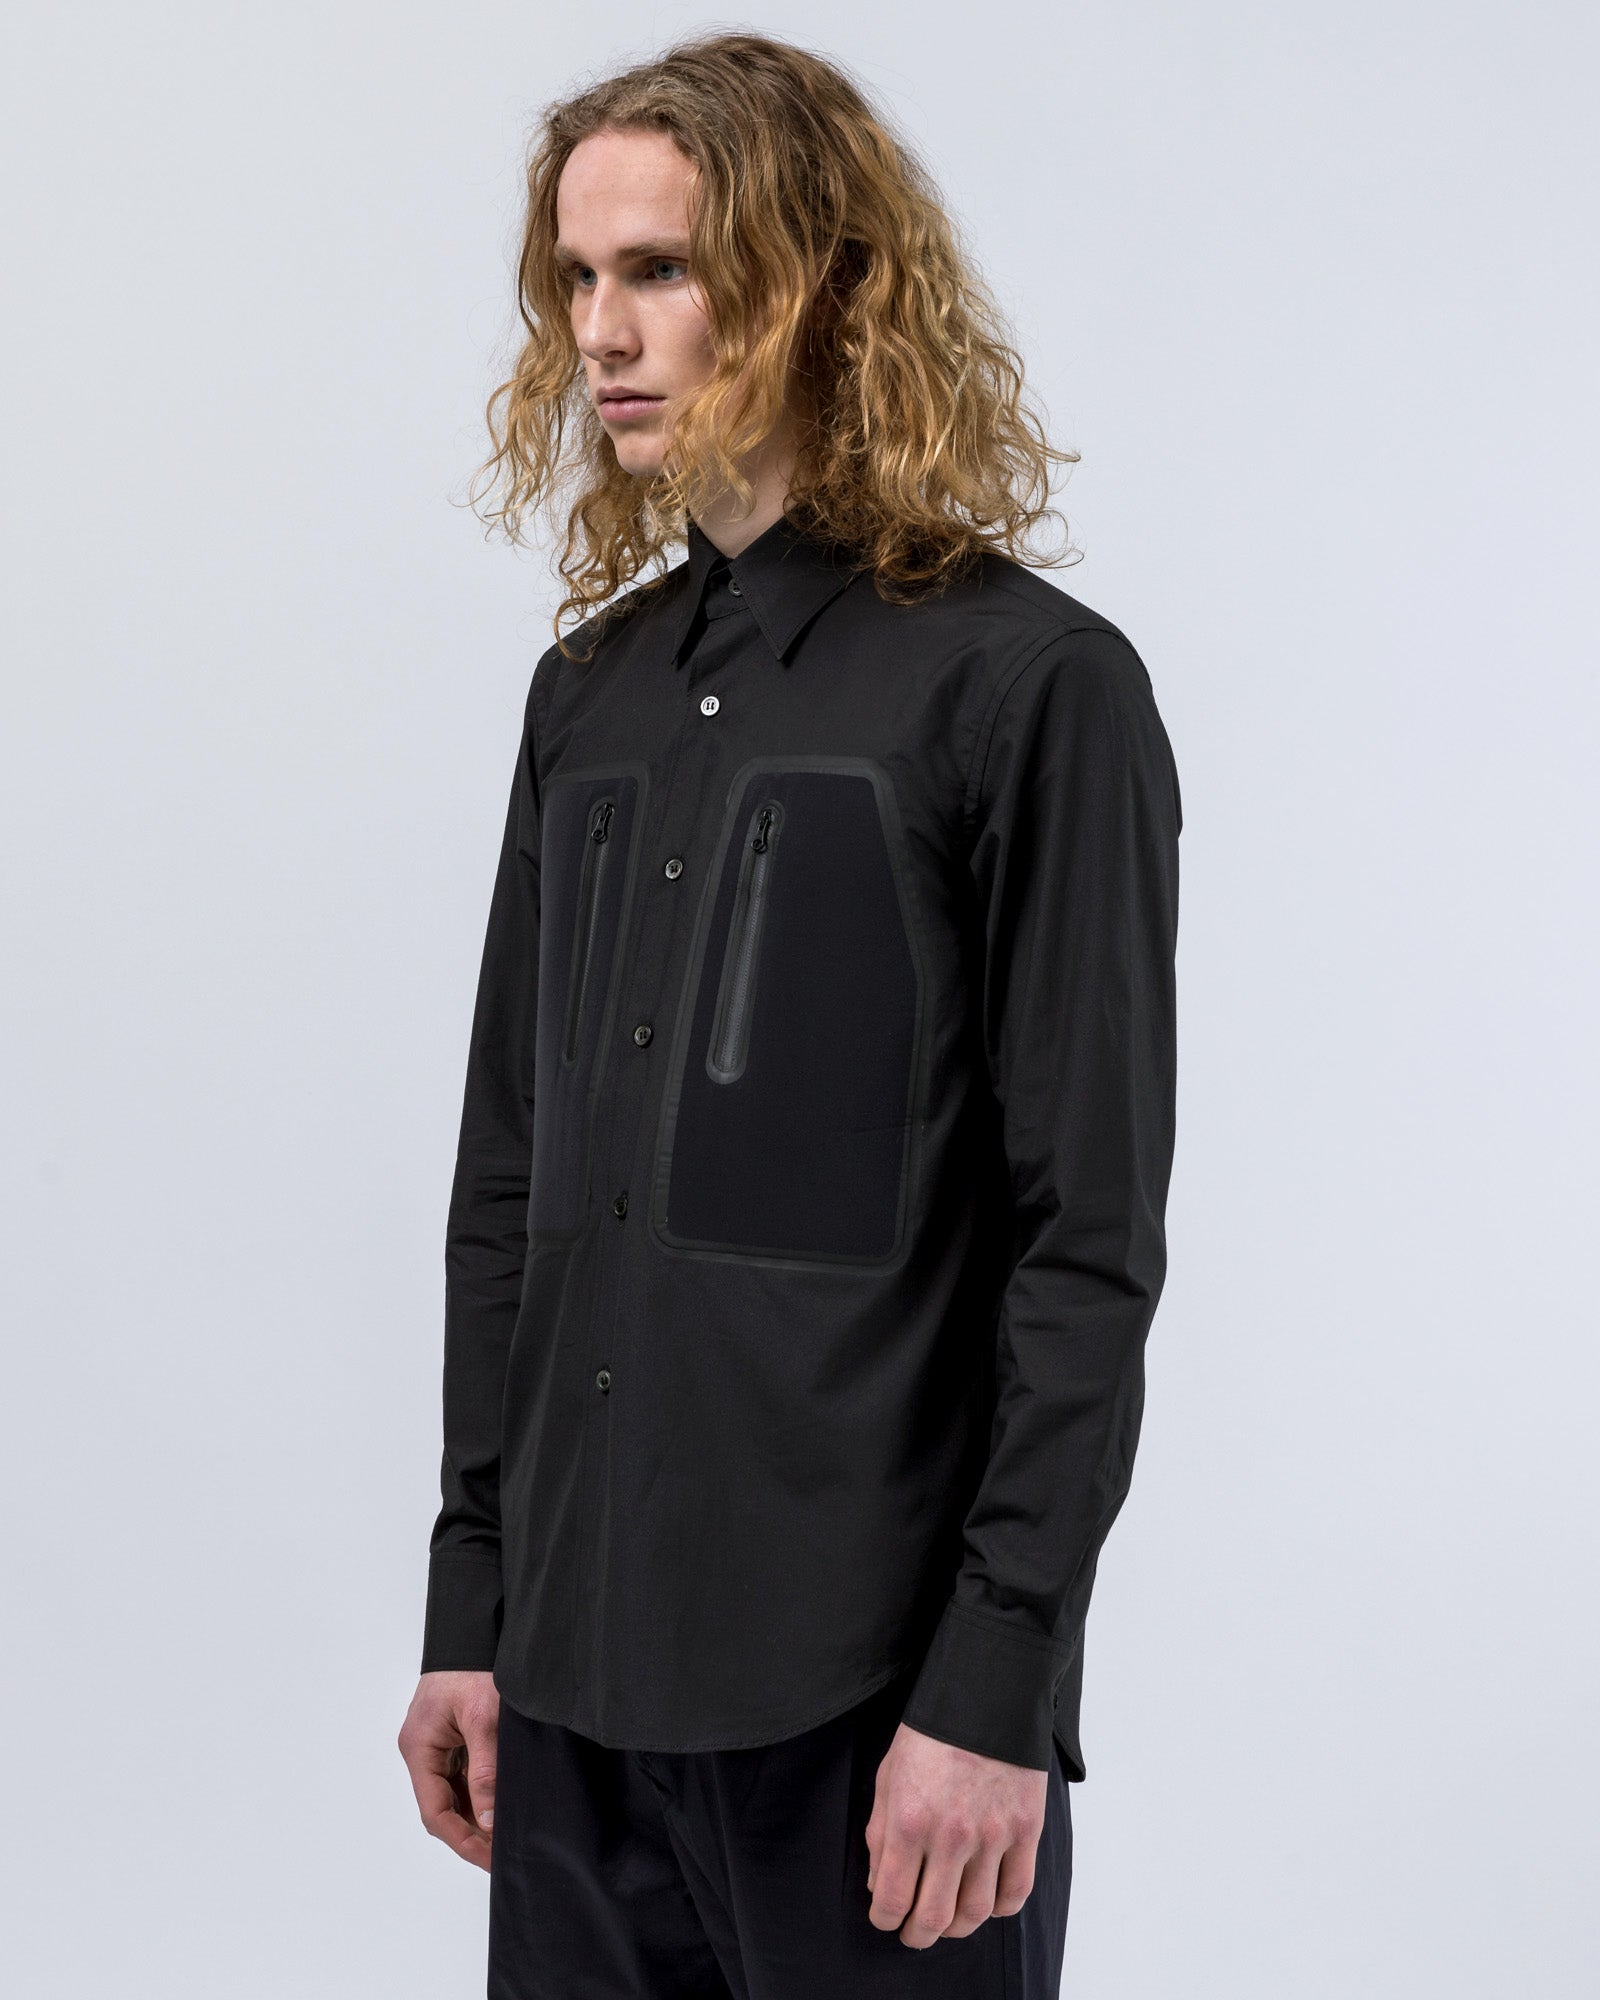 Neoprene Pocket Shirt in Black